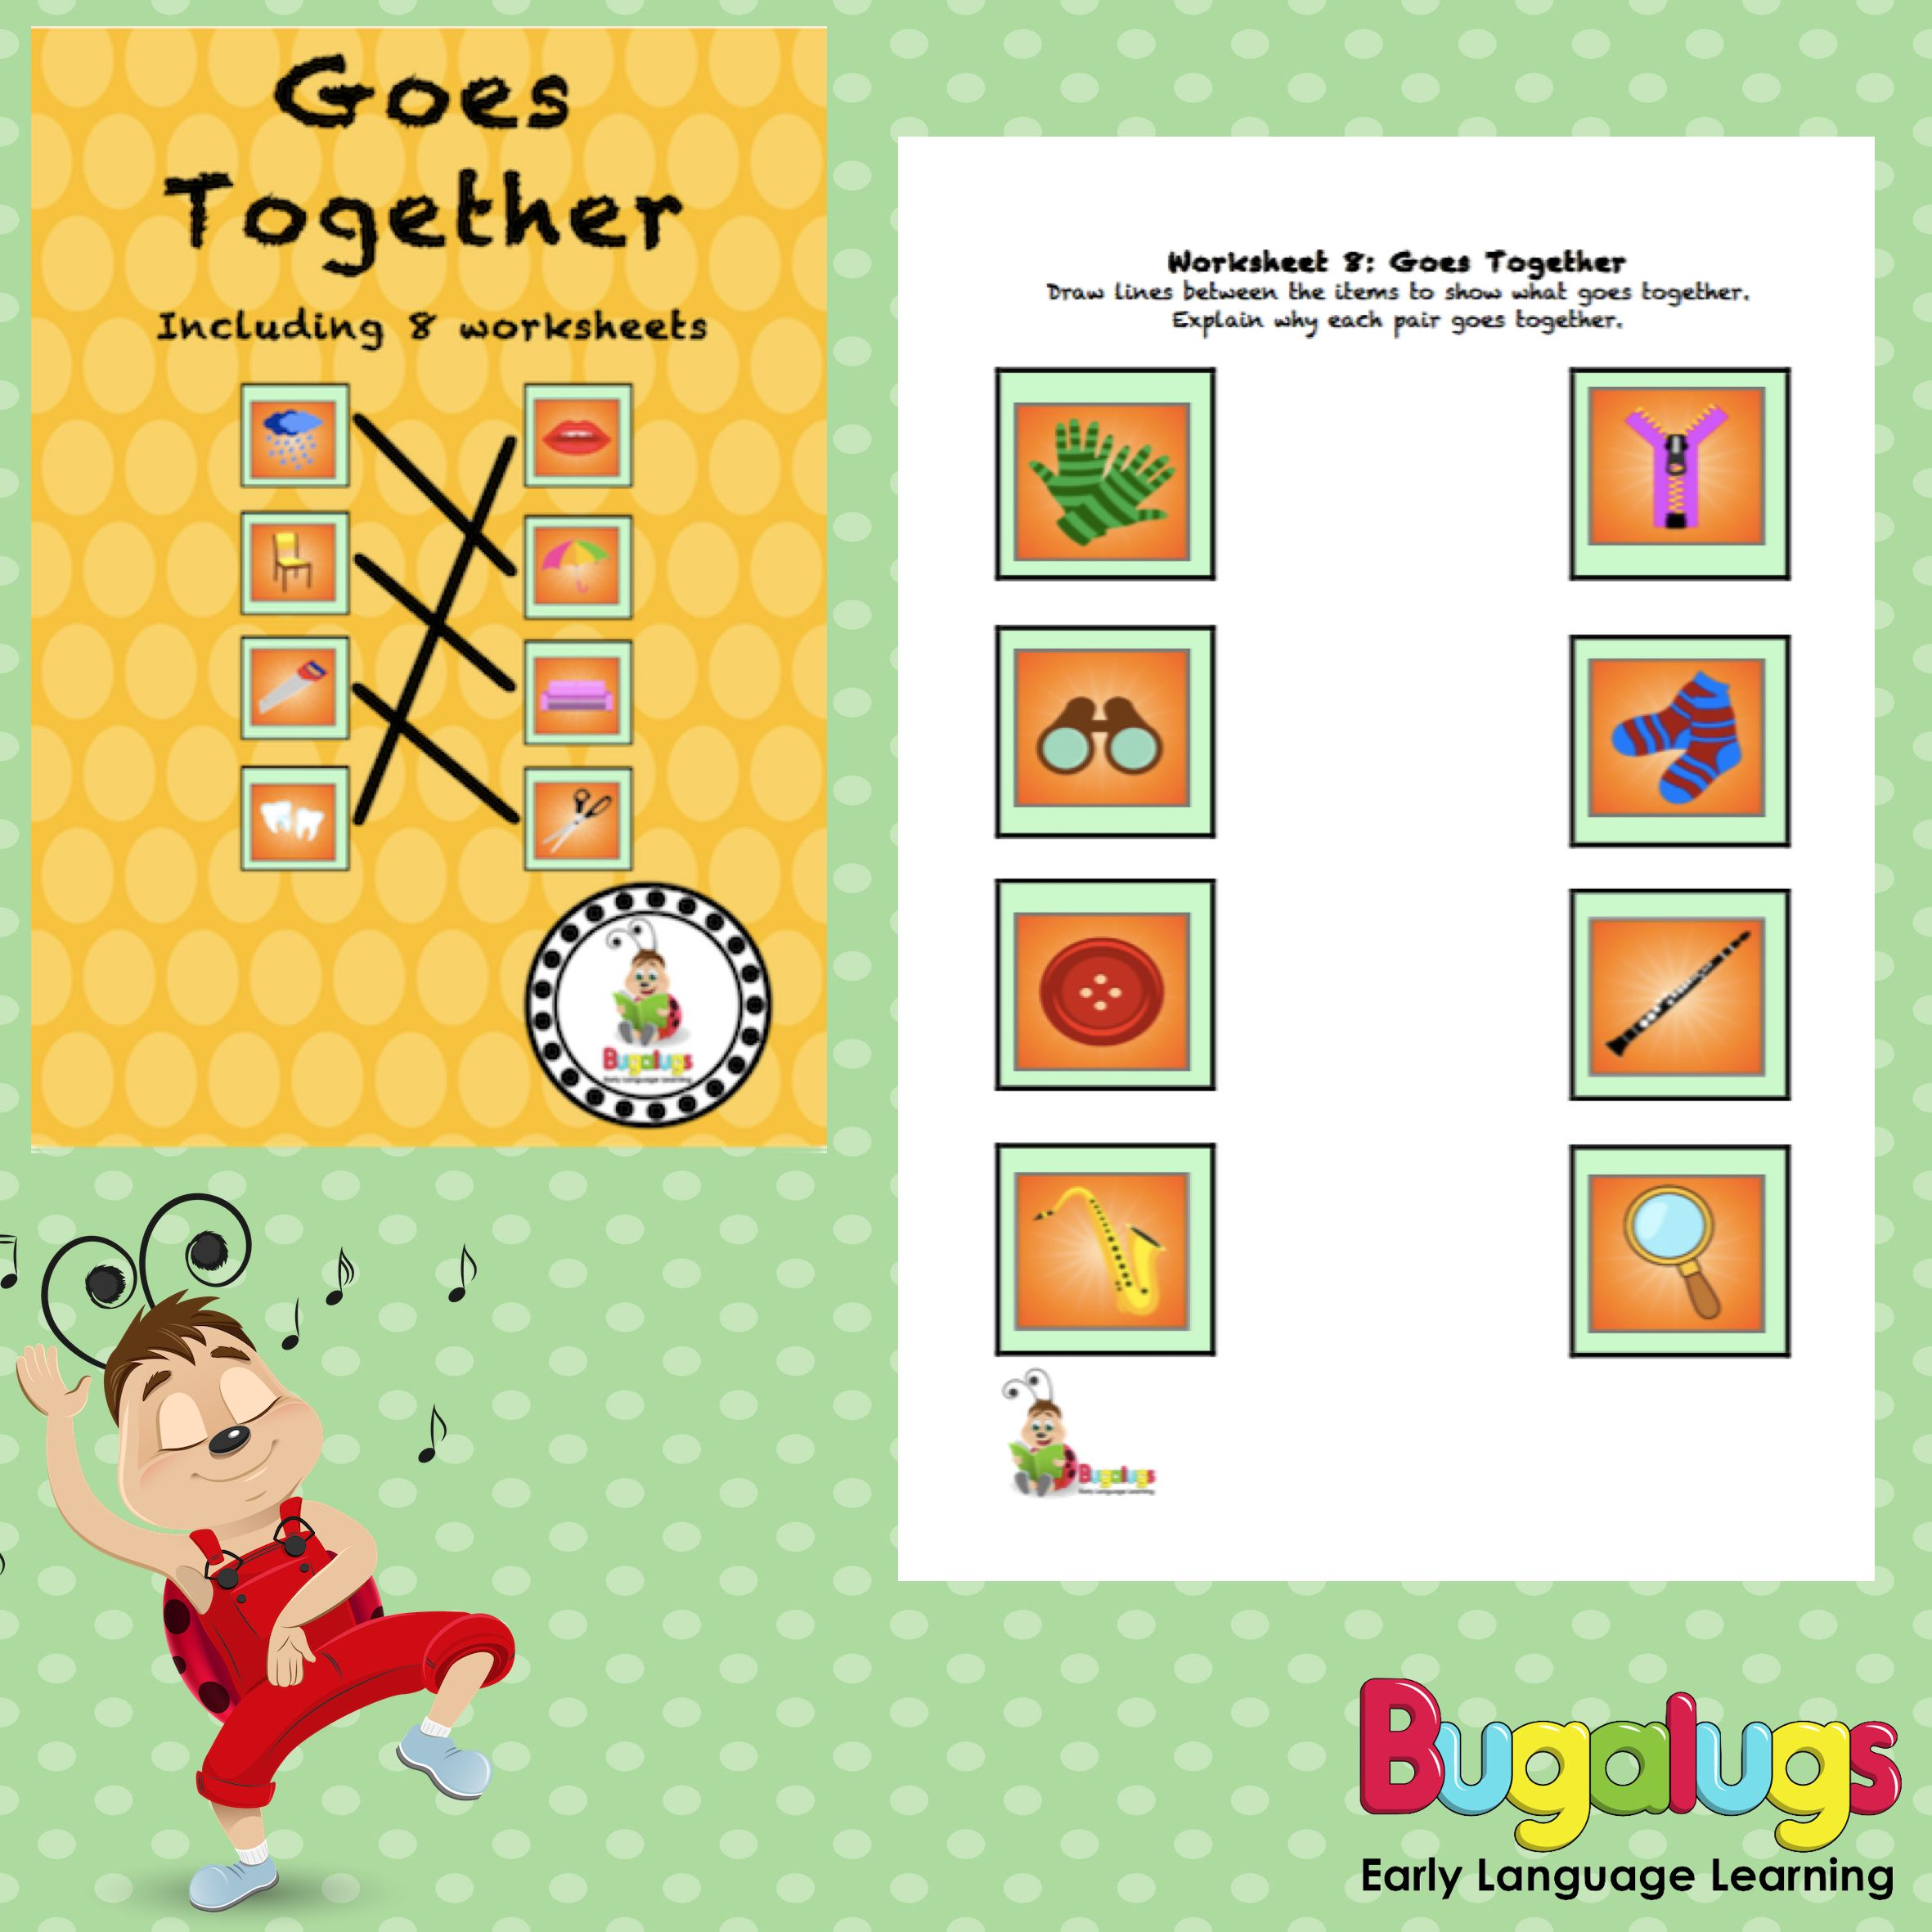 Goes Together Semantic Worksheets This Package Contains 8 Worksheets To Be Completed